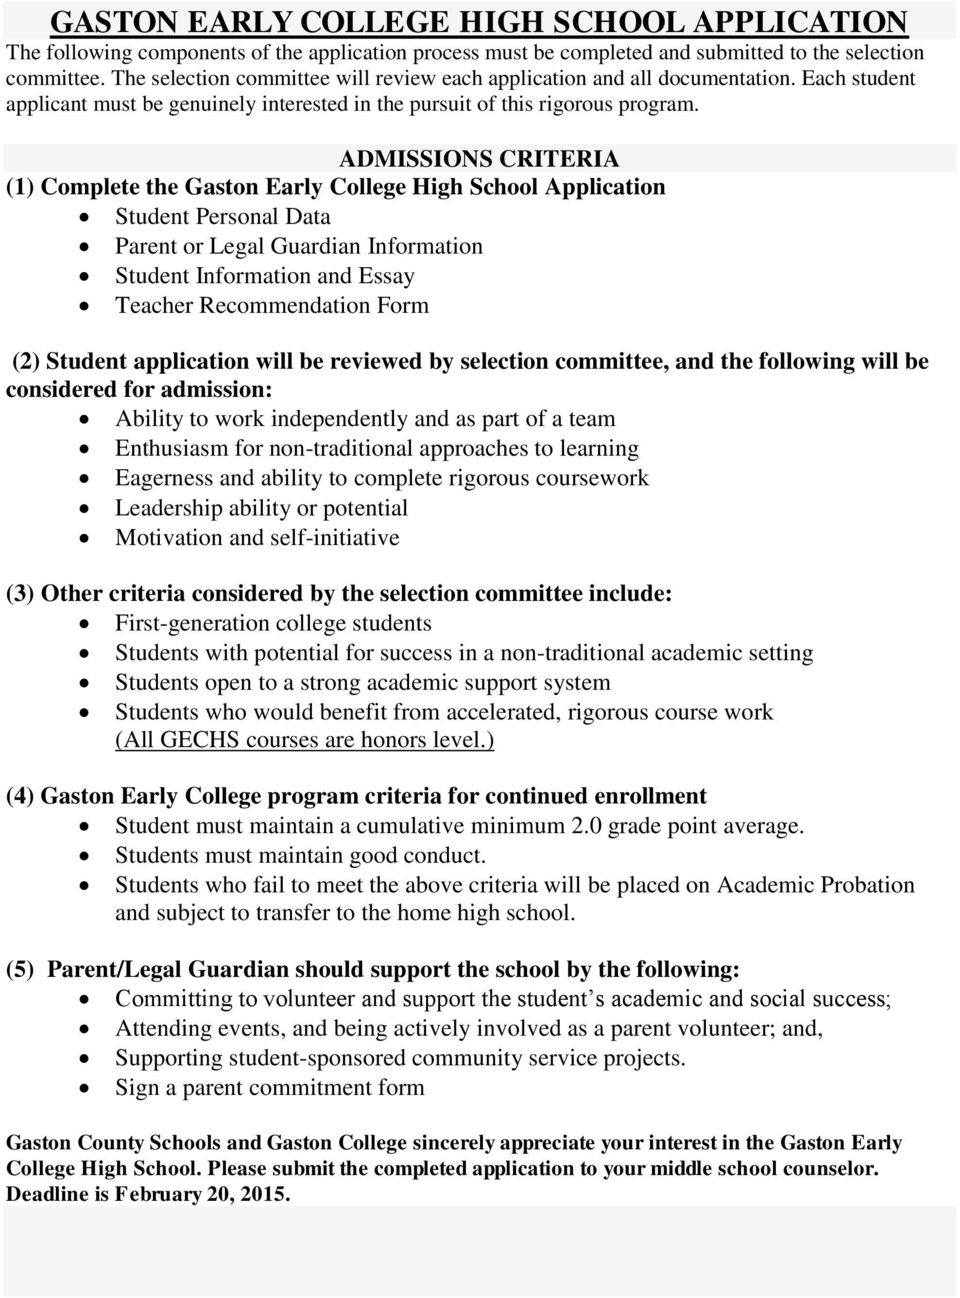 gaston early college high school application pdf admissions criteria 1 complete the gaston early college high school application student personal data